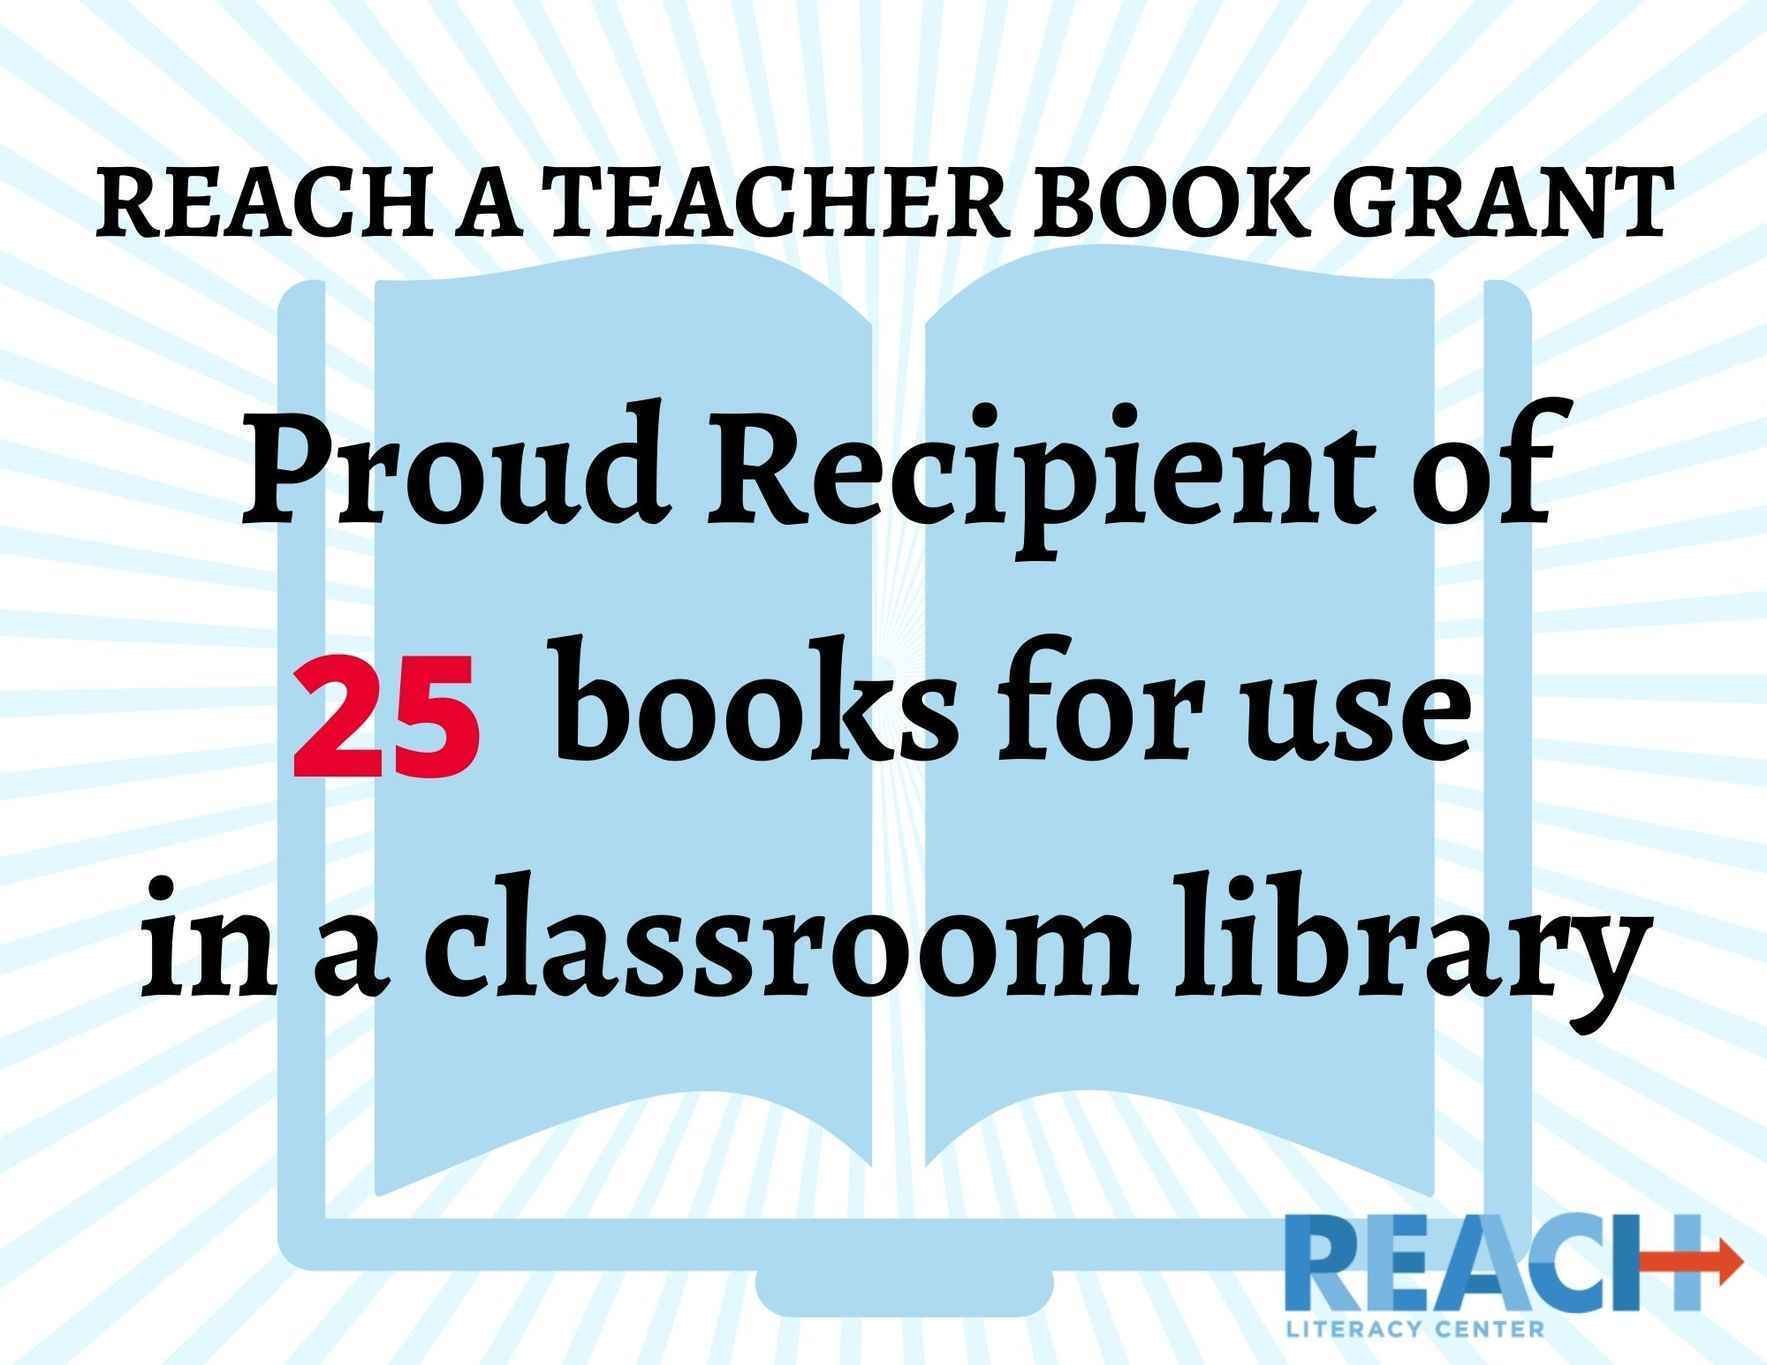 Let's get books to teachers in our community. image